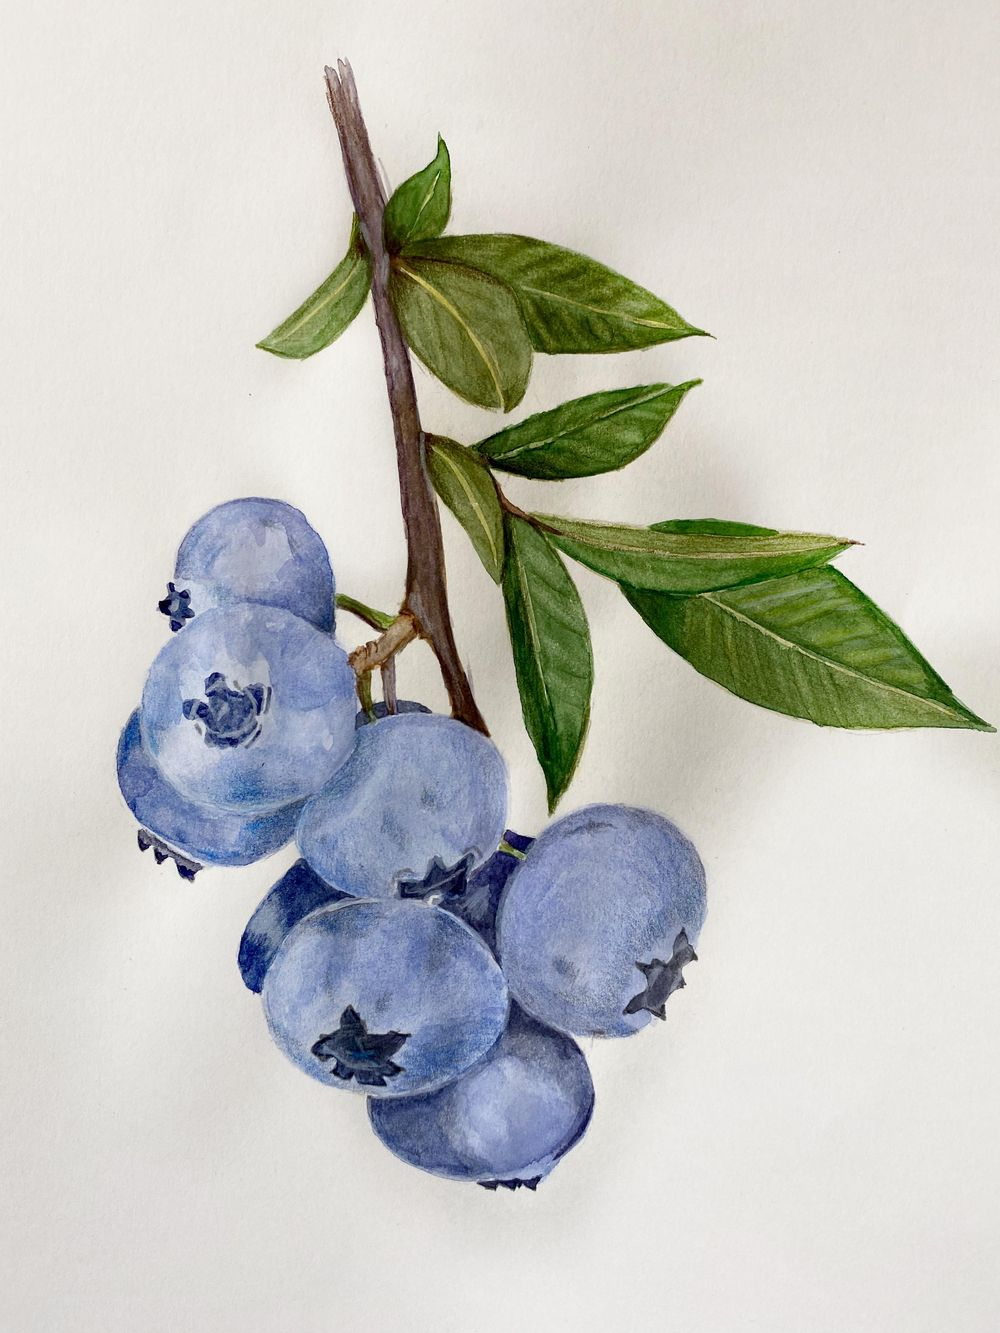 Blueberries - image 1 - student project